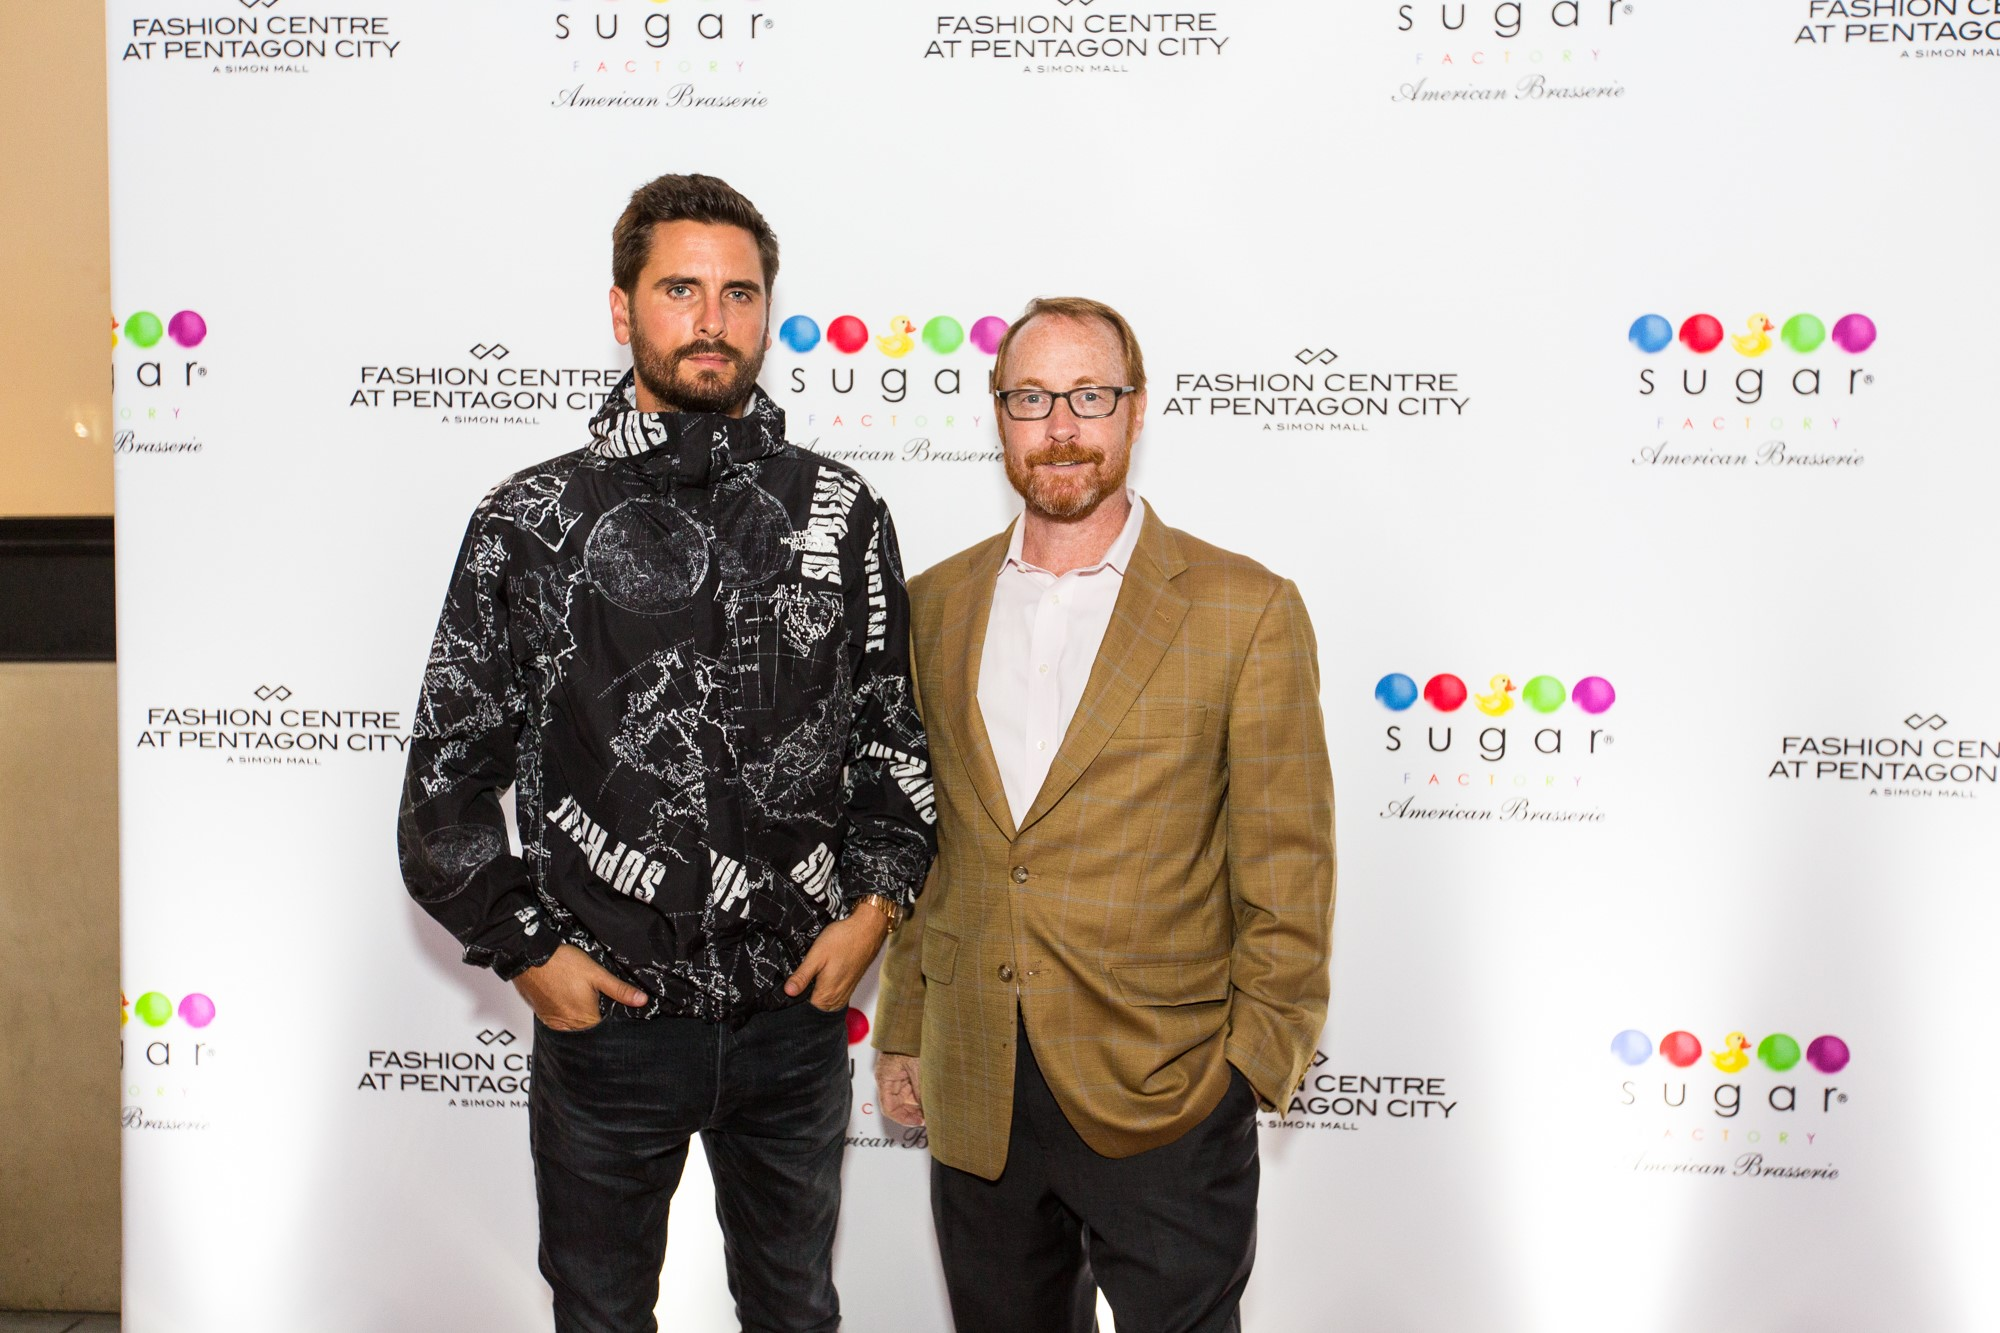 Scott Disick hosted the grand opening celebration of Sugar Factory American Brasserie's Fashion Centre at Pentagon City Mall location. (Image: John Robinson)<p></p>